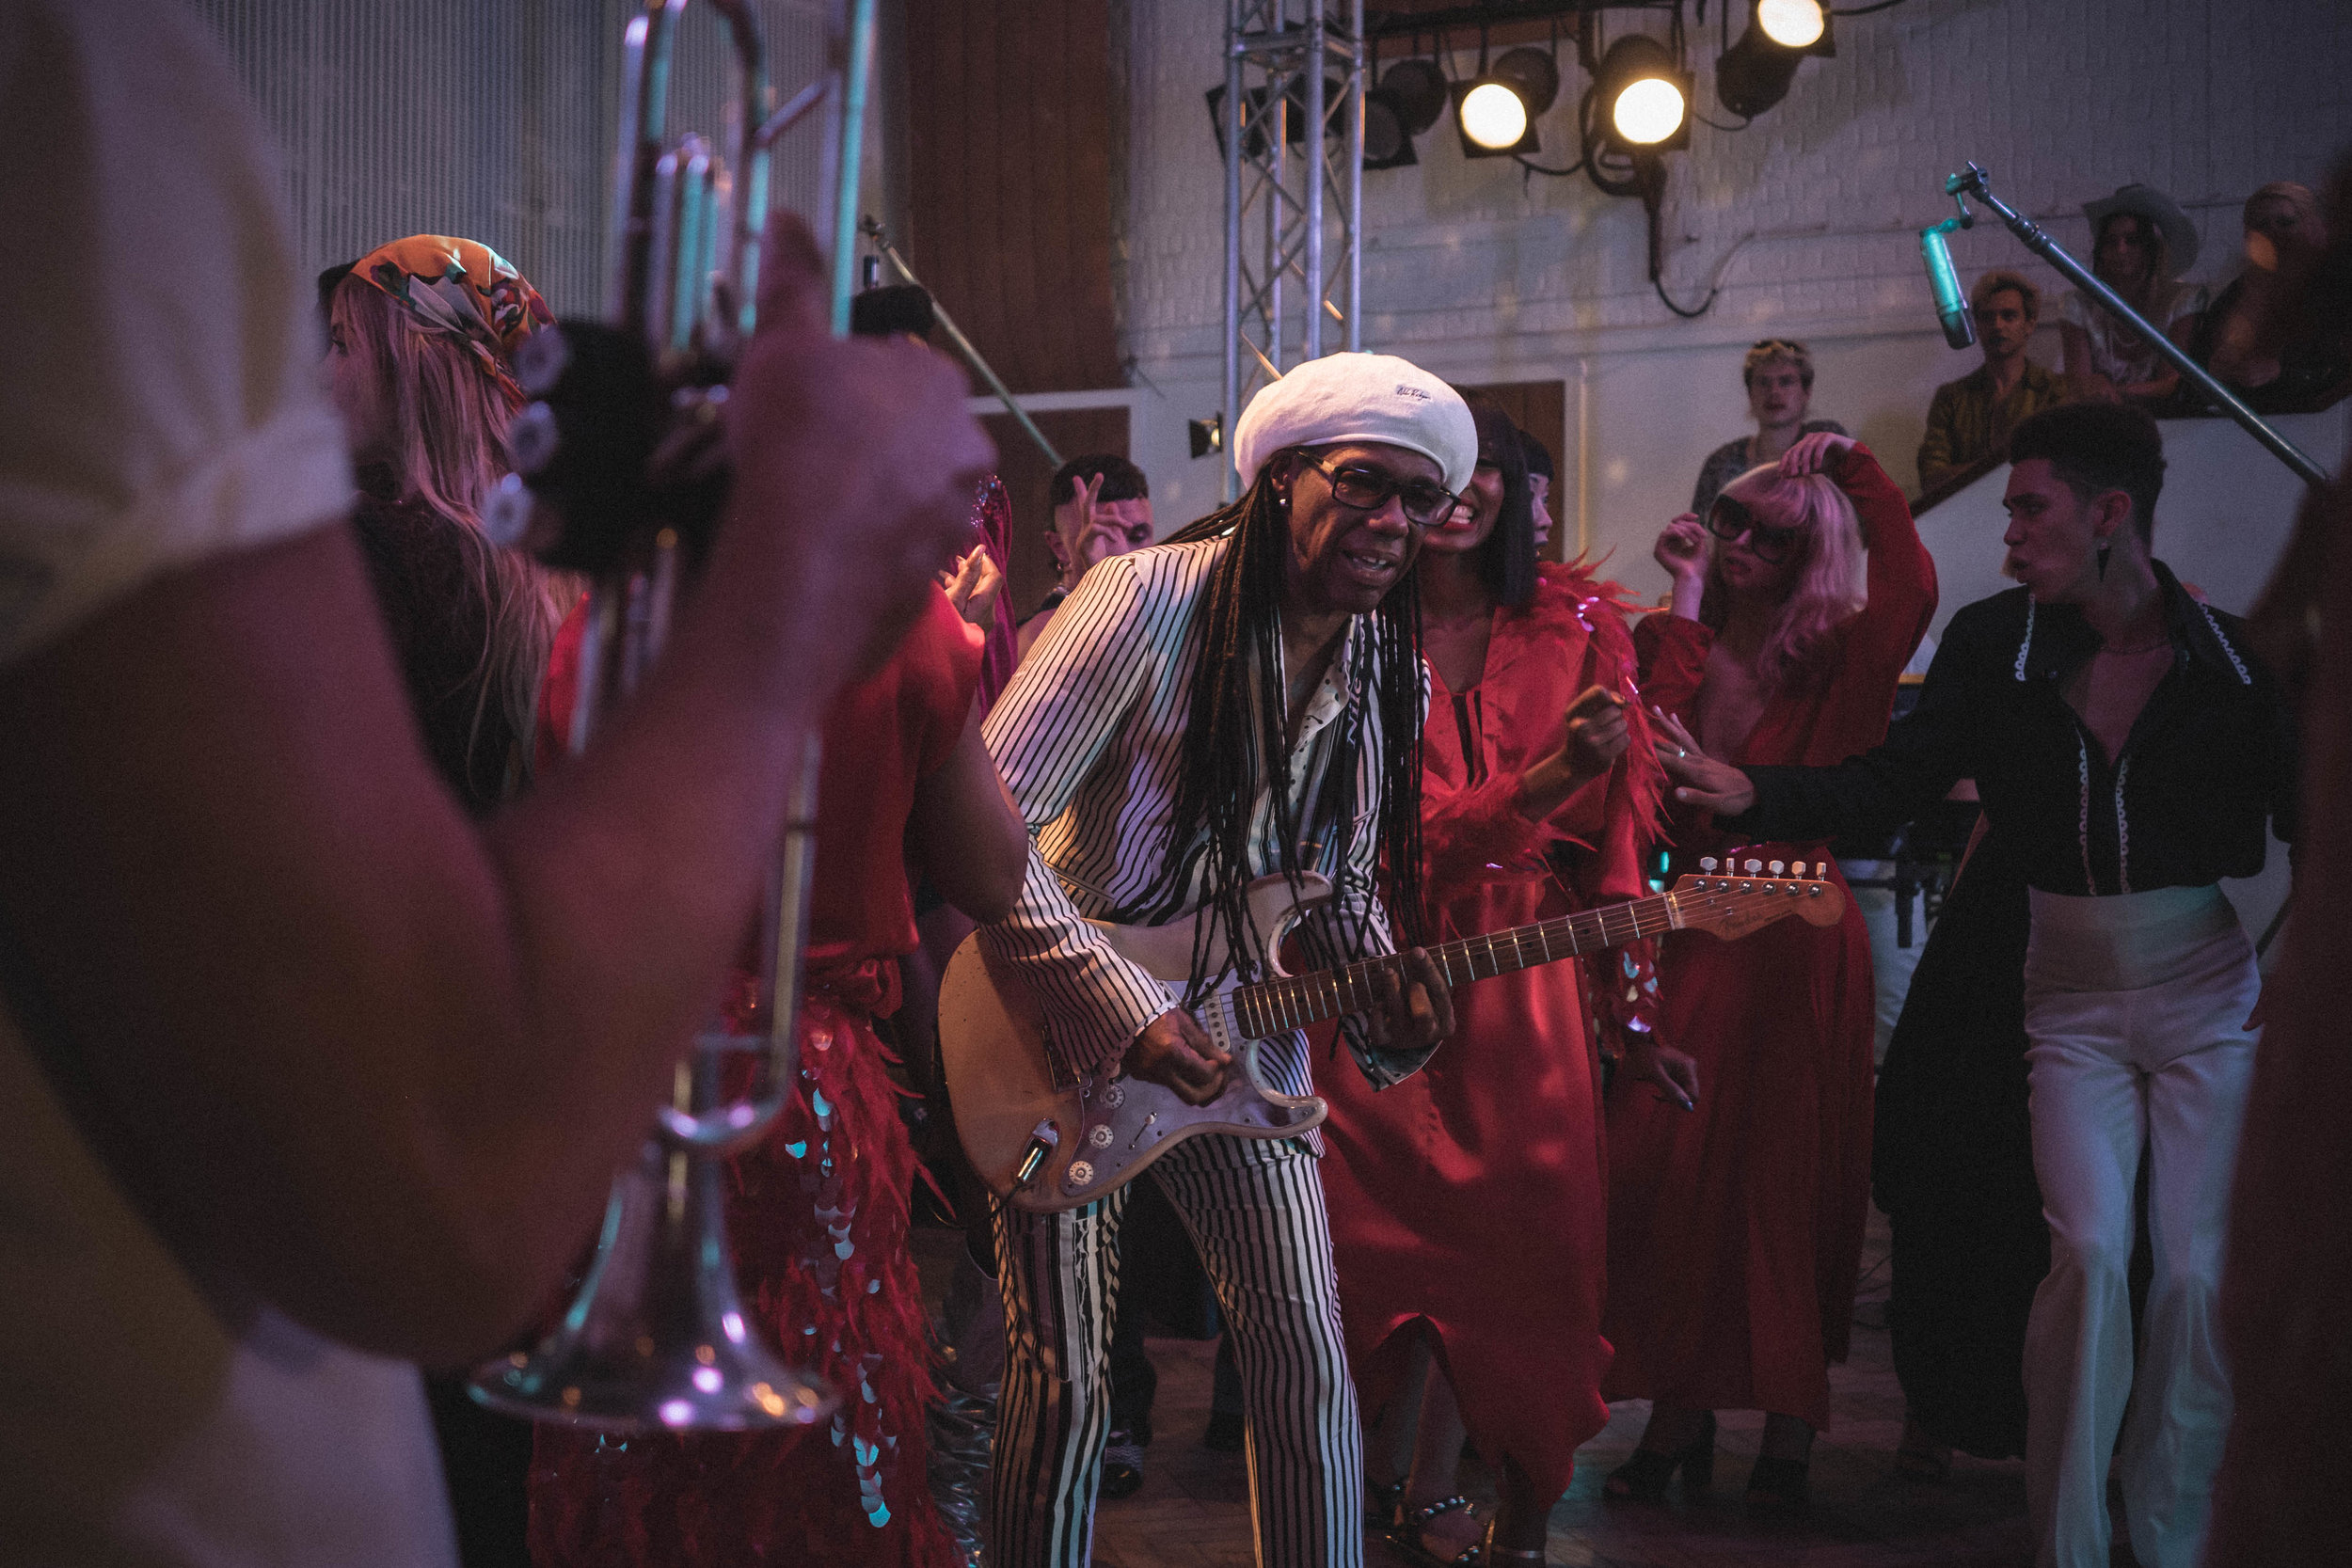 Nile Rogers' BTS Music Video and Cameo By ME!